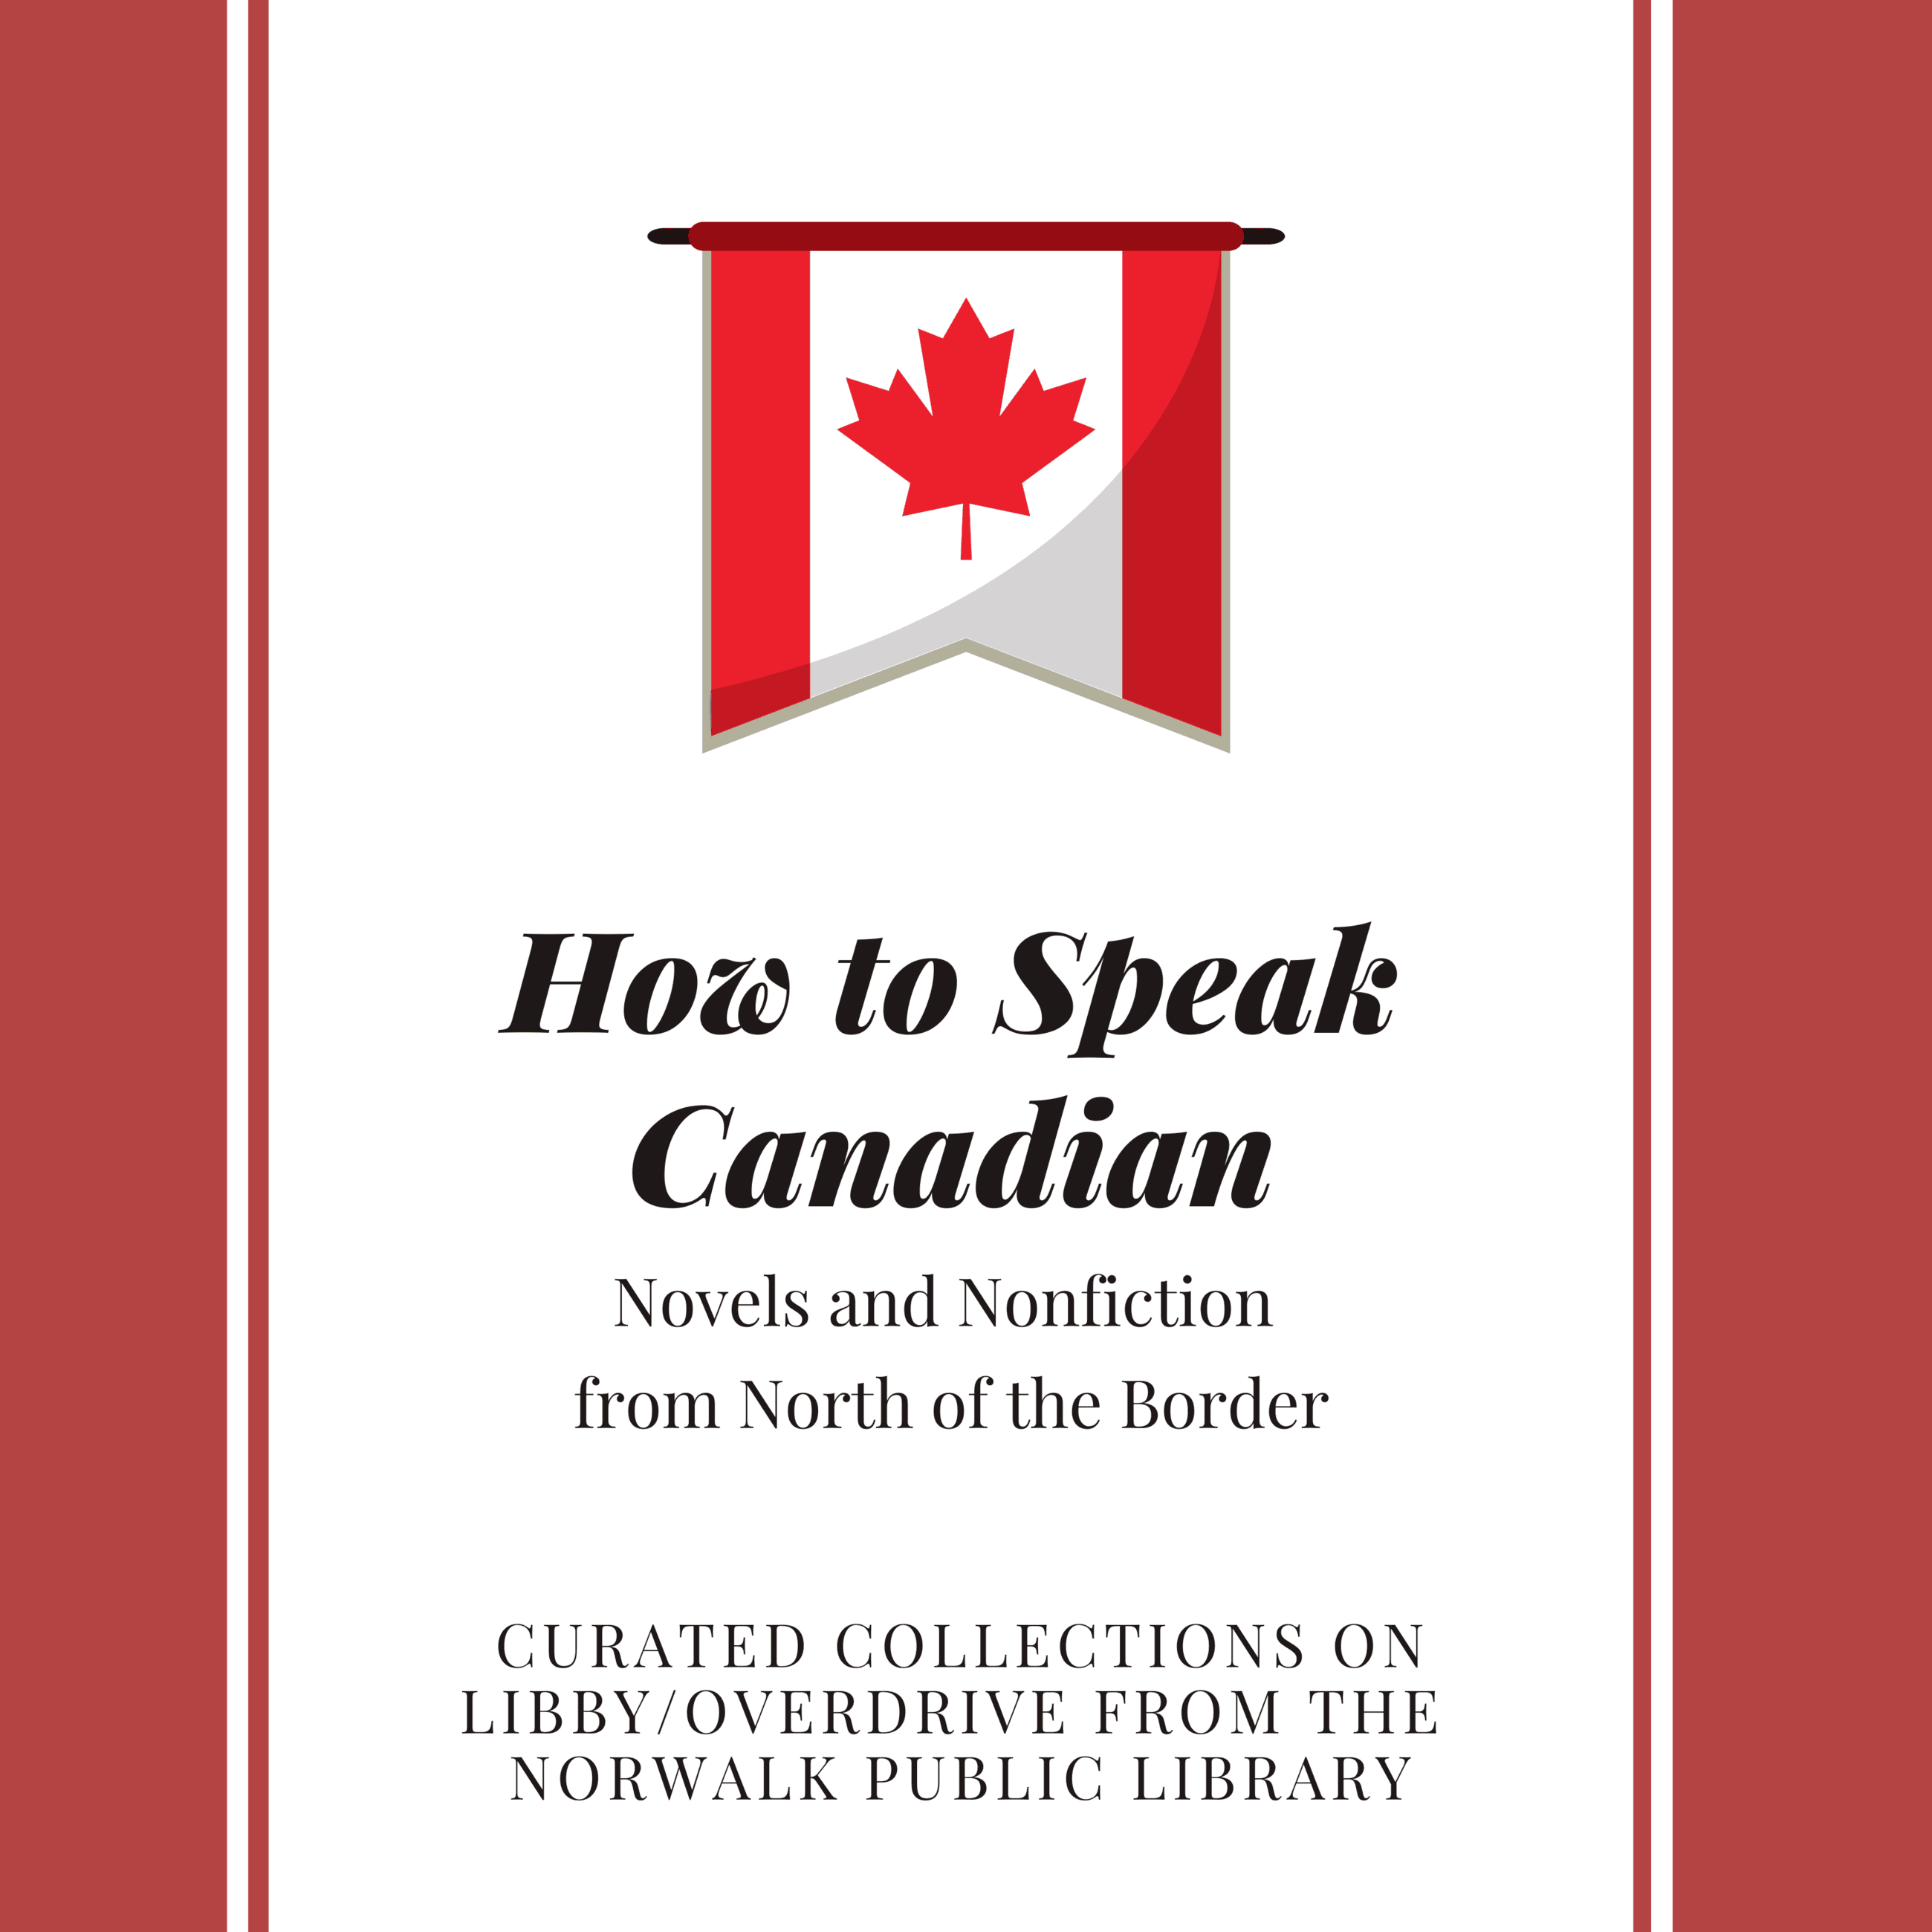 How to Speak Canadian Opens in new window